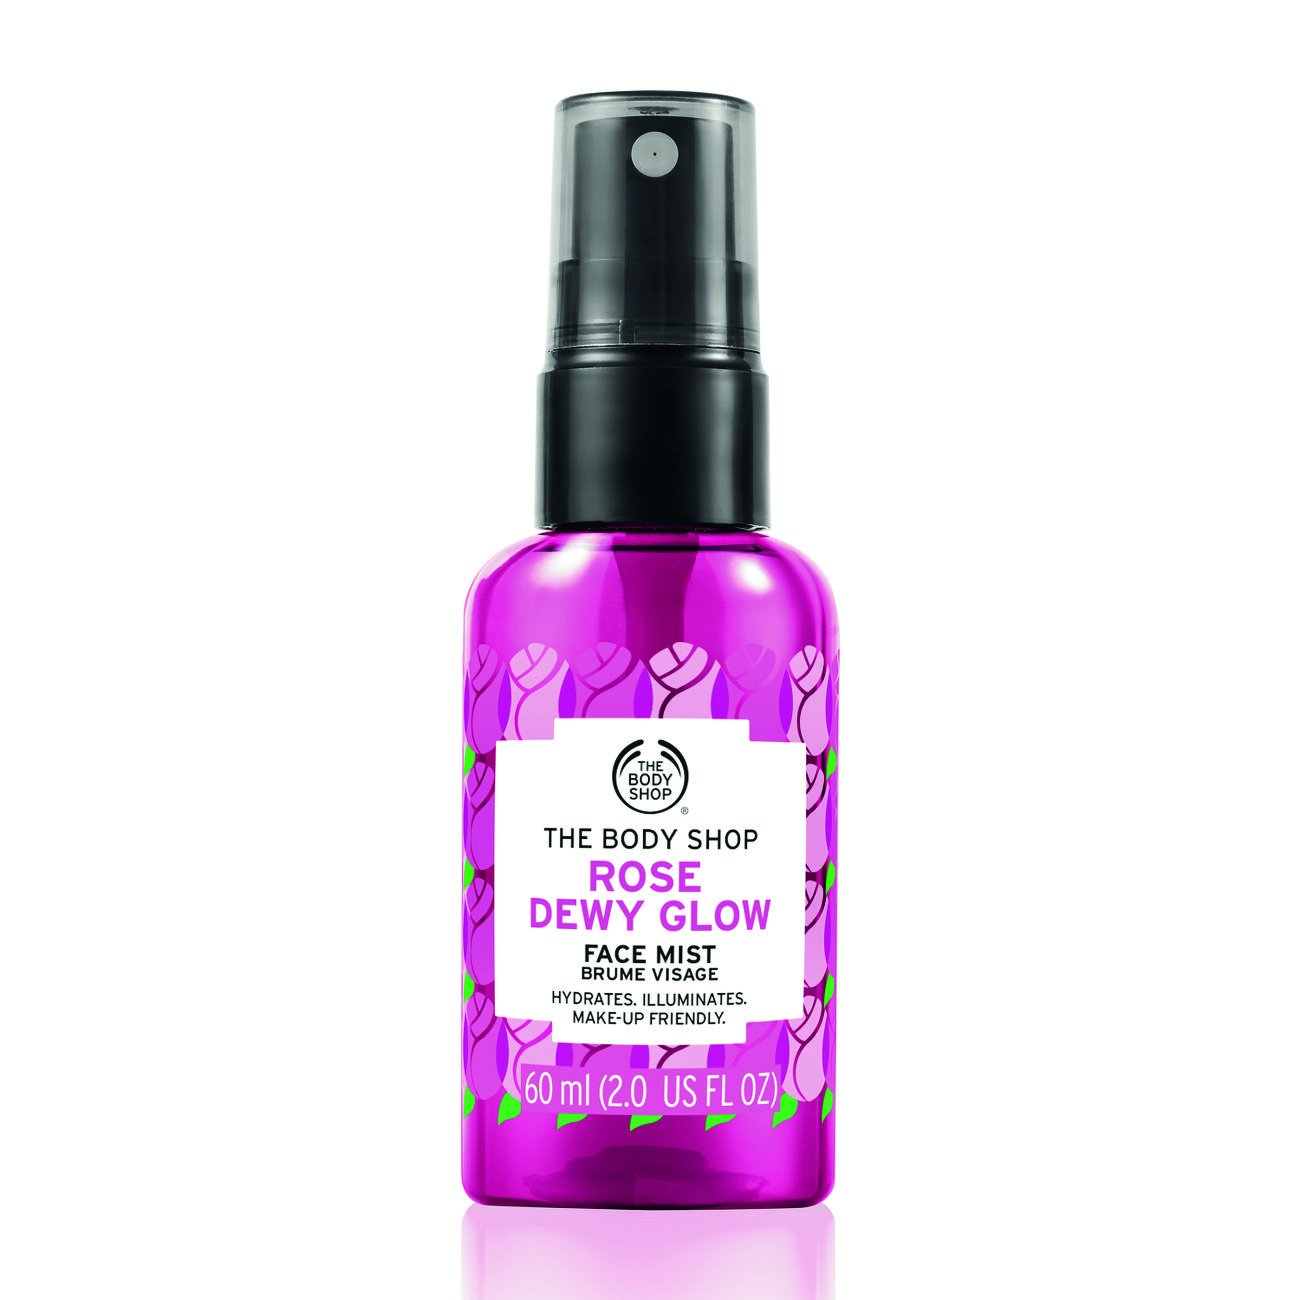 The Body Shop Rose Dewy Glow Face Mist, Hydrating, Illuminating & Make-Up Friendly, 100% Vegan, 2 Fluid Ounce Buth-na-Bodhaige Inc d/b/a The Body Shop